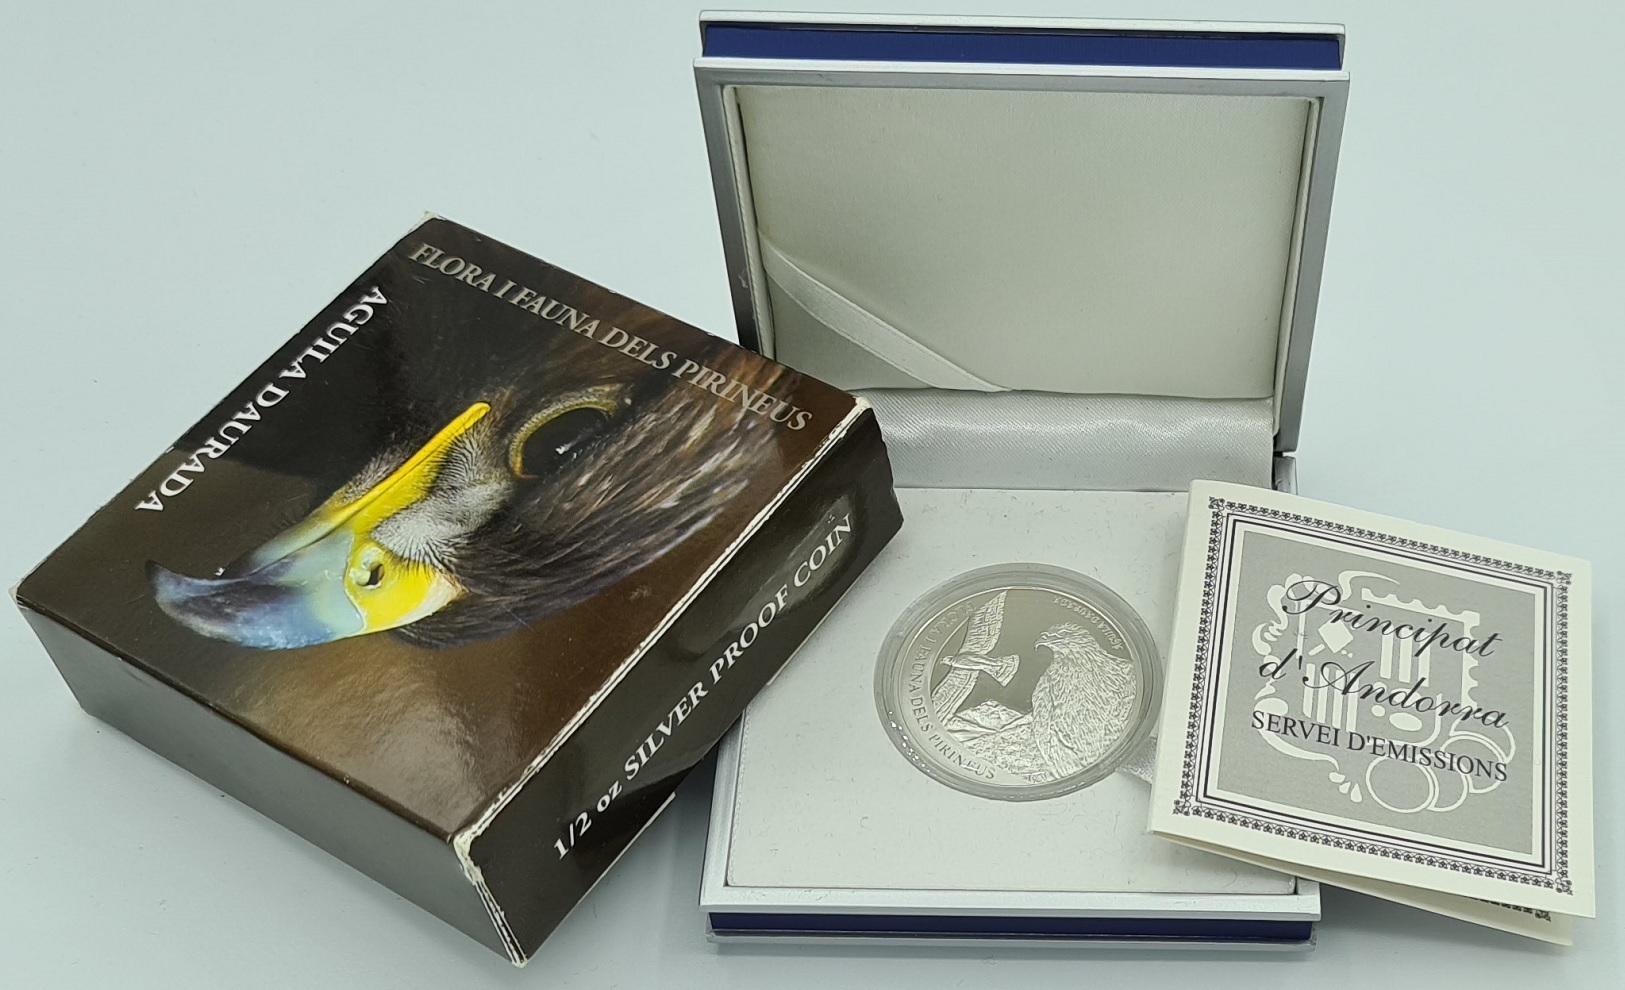 (W009.500.2012.0,50.oz.Ag.1.000000001) 5 Diners Andorra 2011 0.5 oz Proof silver - Golden eagle Reverse (zoom)